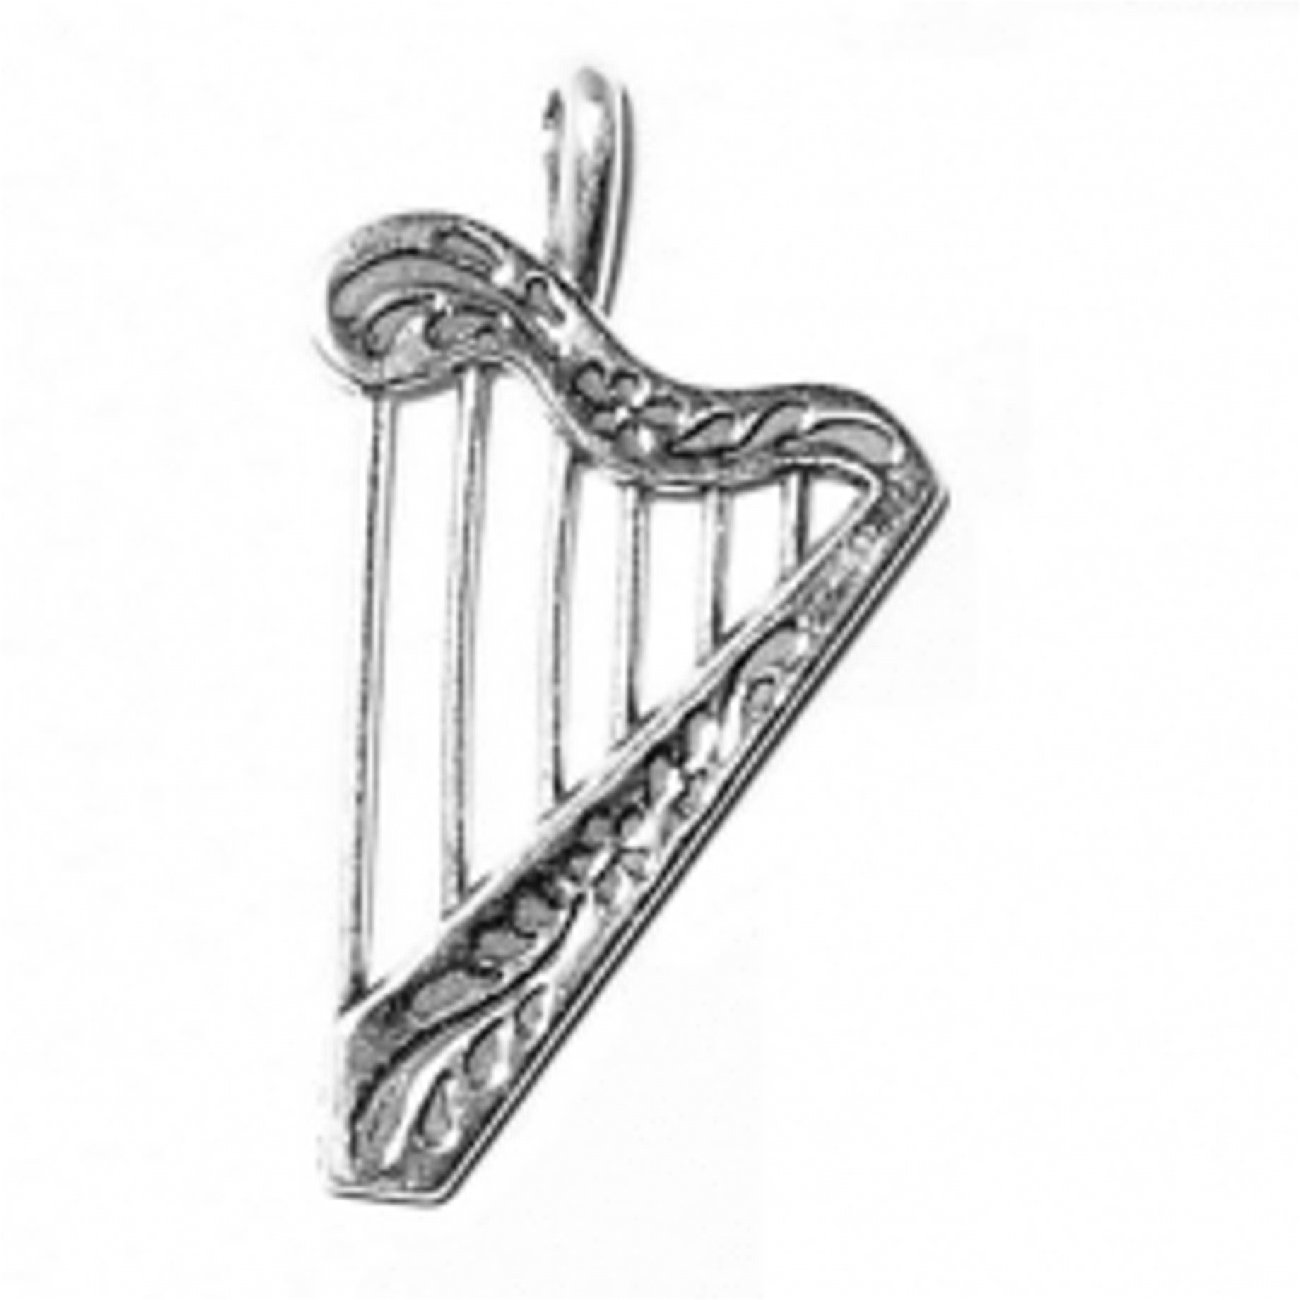 Sterling Silver Charm Bracelet With Attached 3D Musical Instrument Six Stringed Harp Charm With Flow